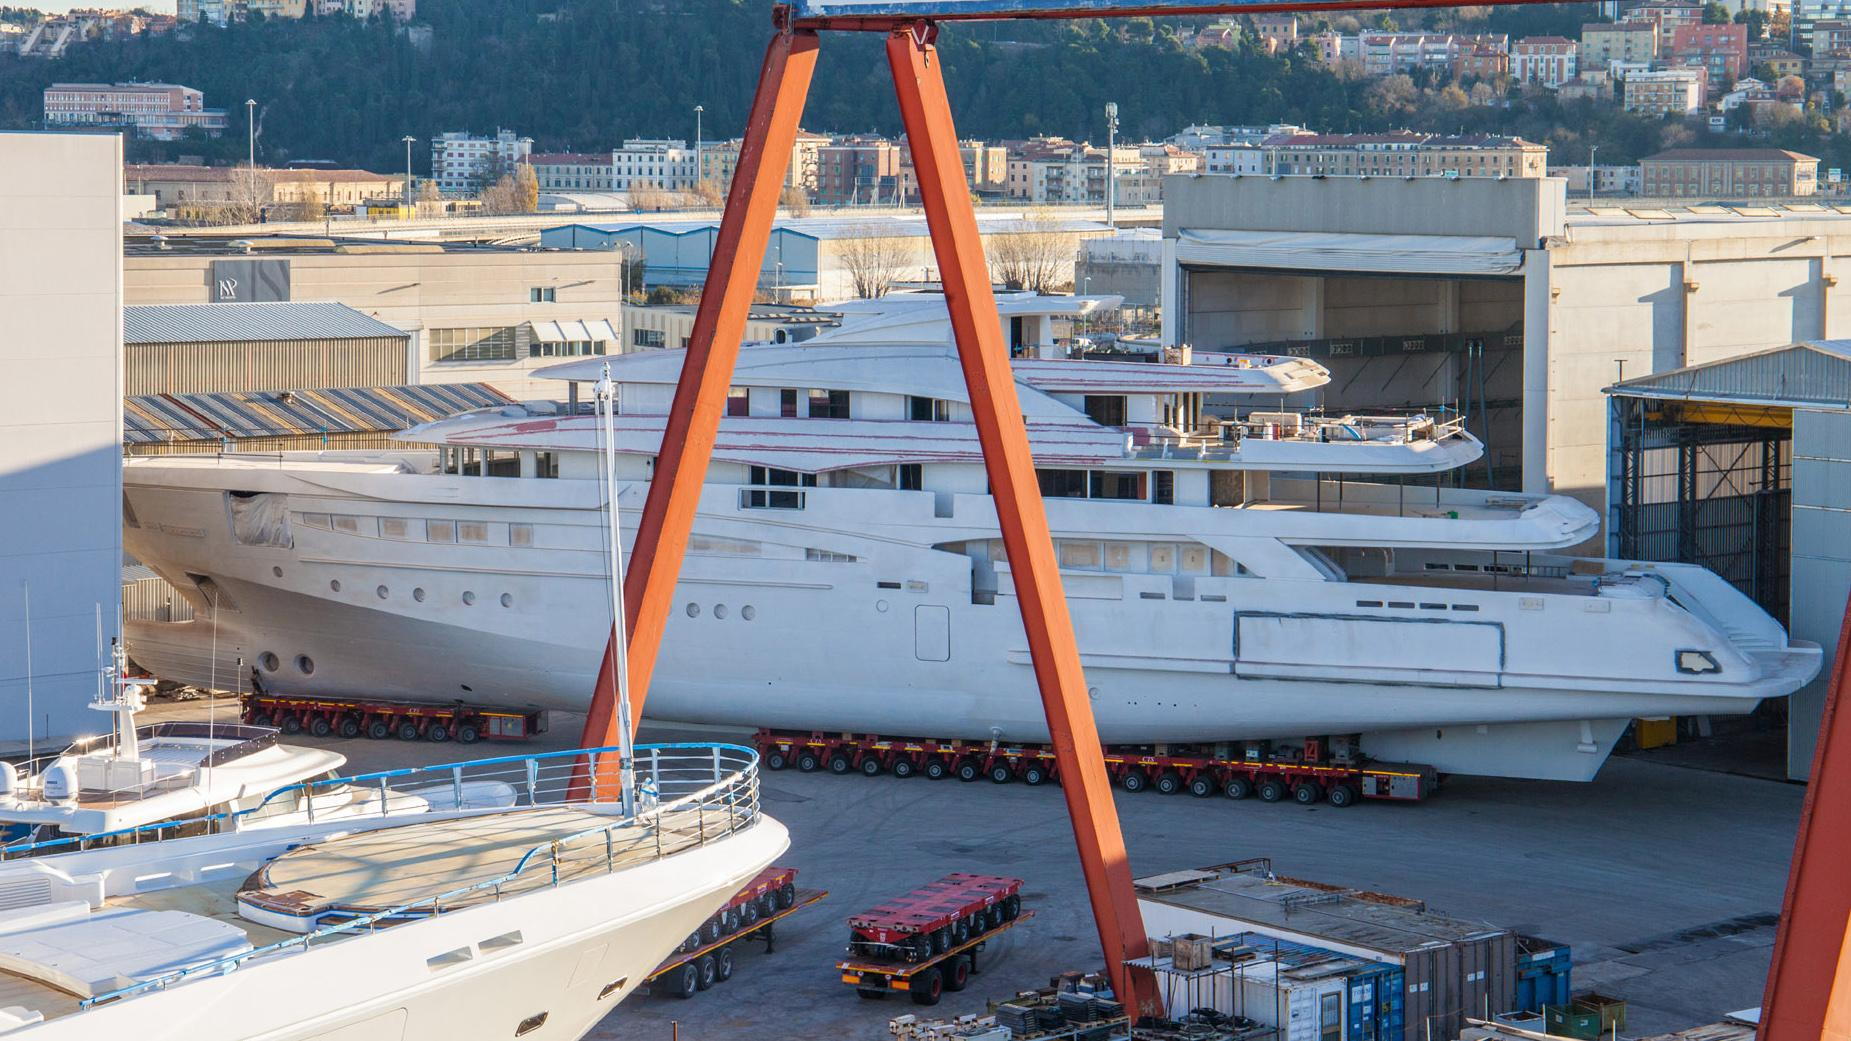 mimtee motoryacht crn yachts 135 80m 2019 under construction